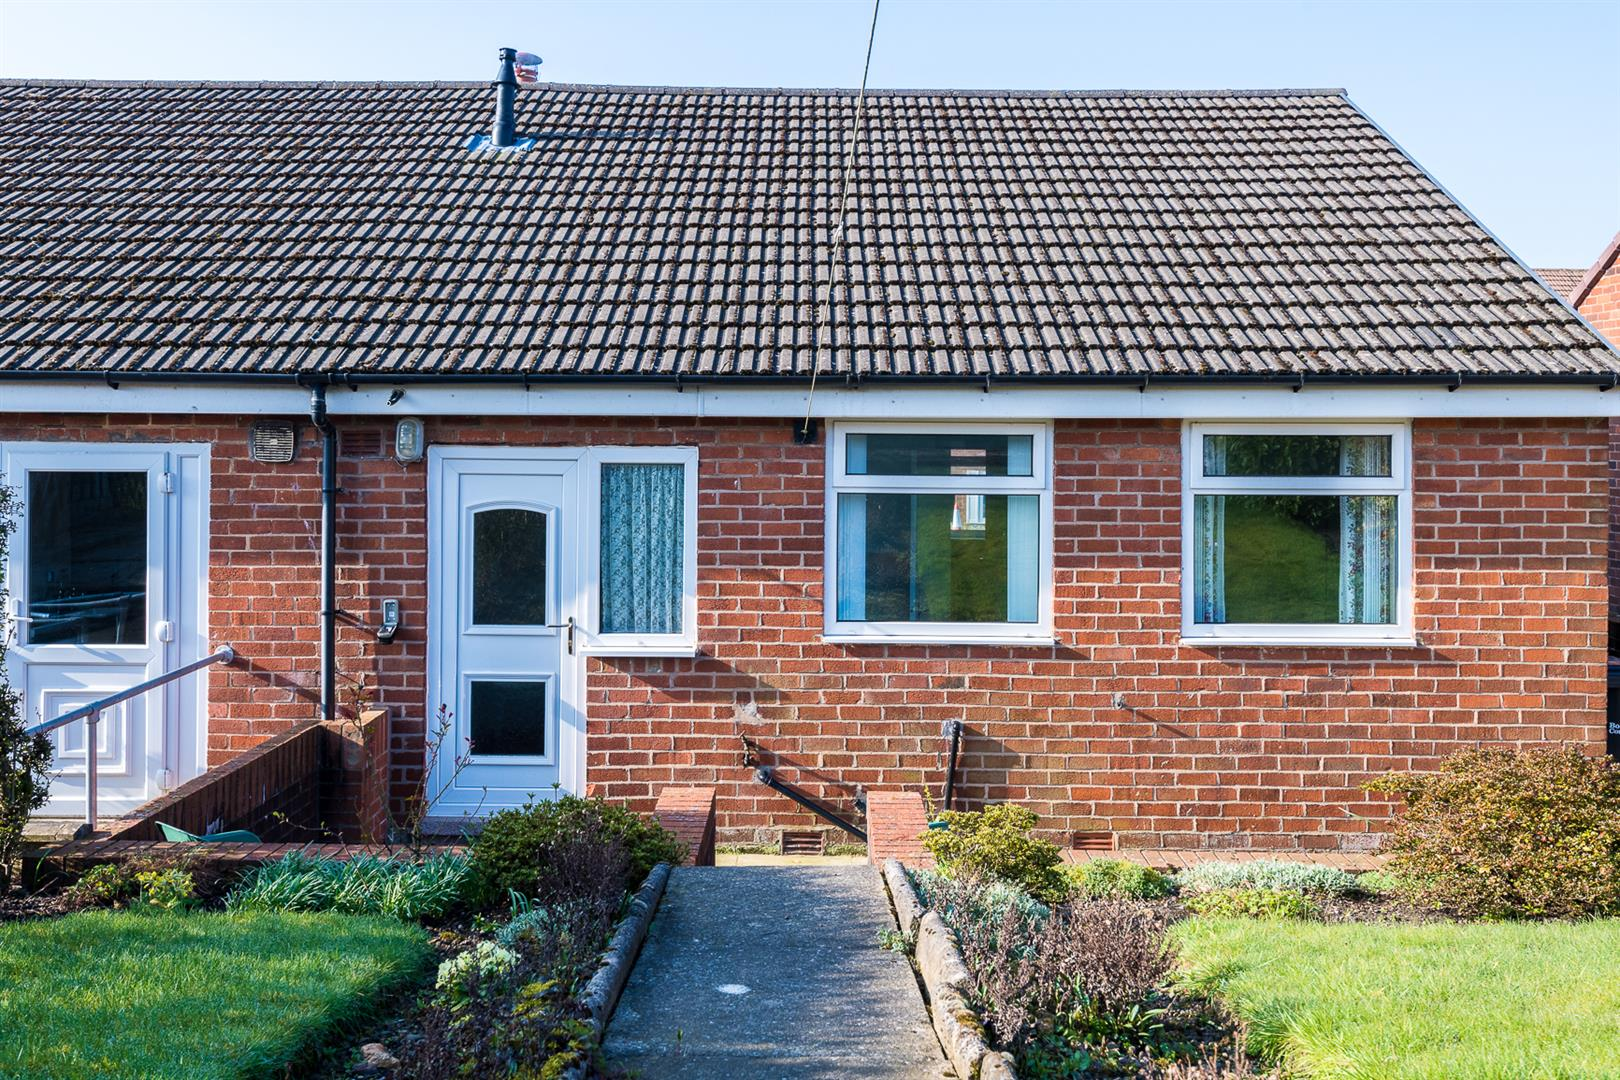 2 Bedroom Semi Detached Bungalow Sale Agreed Image 13